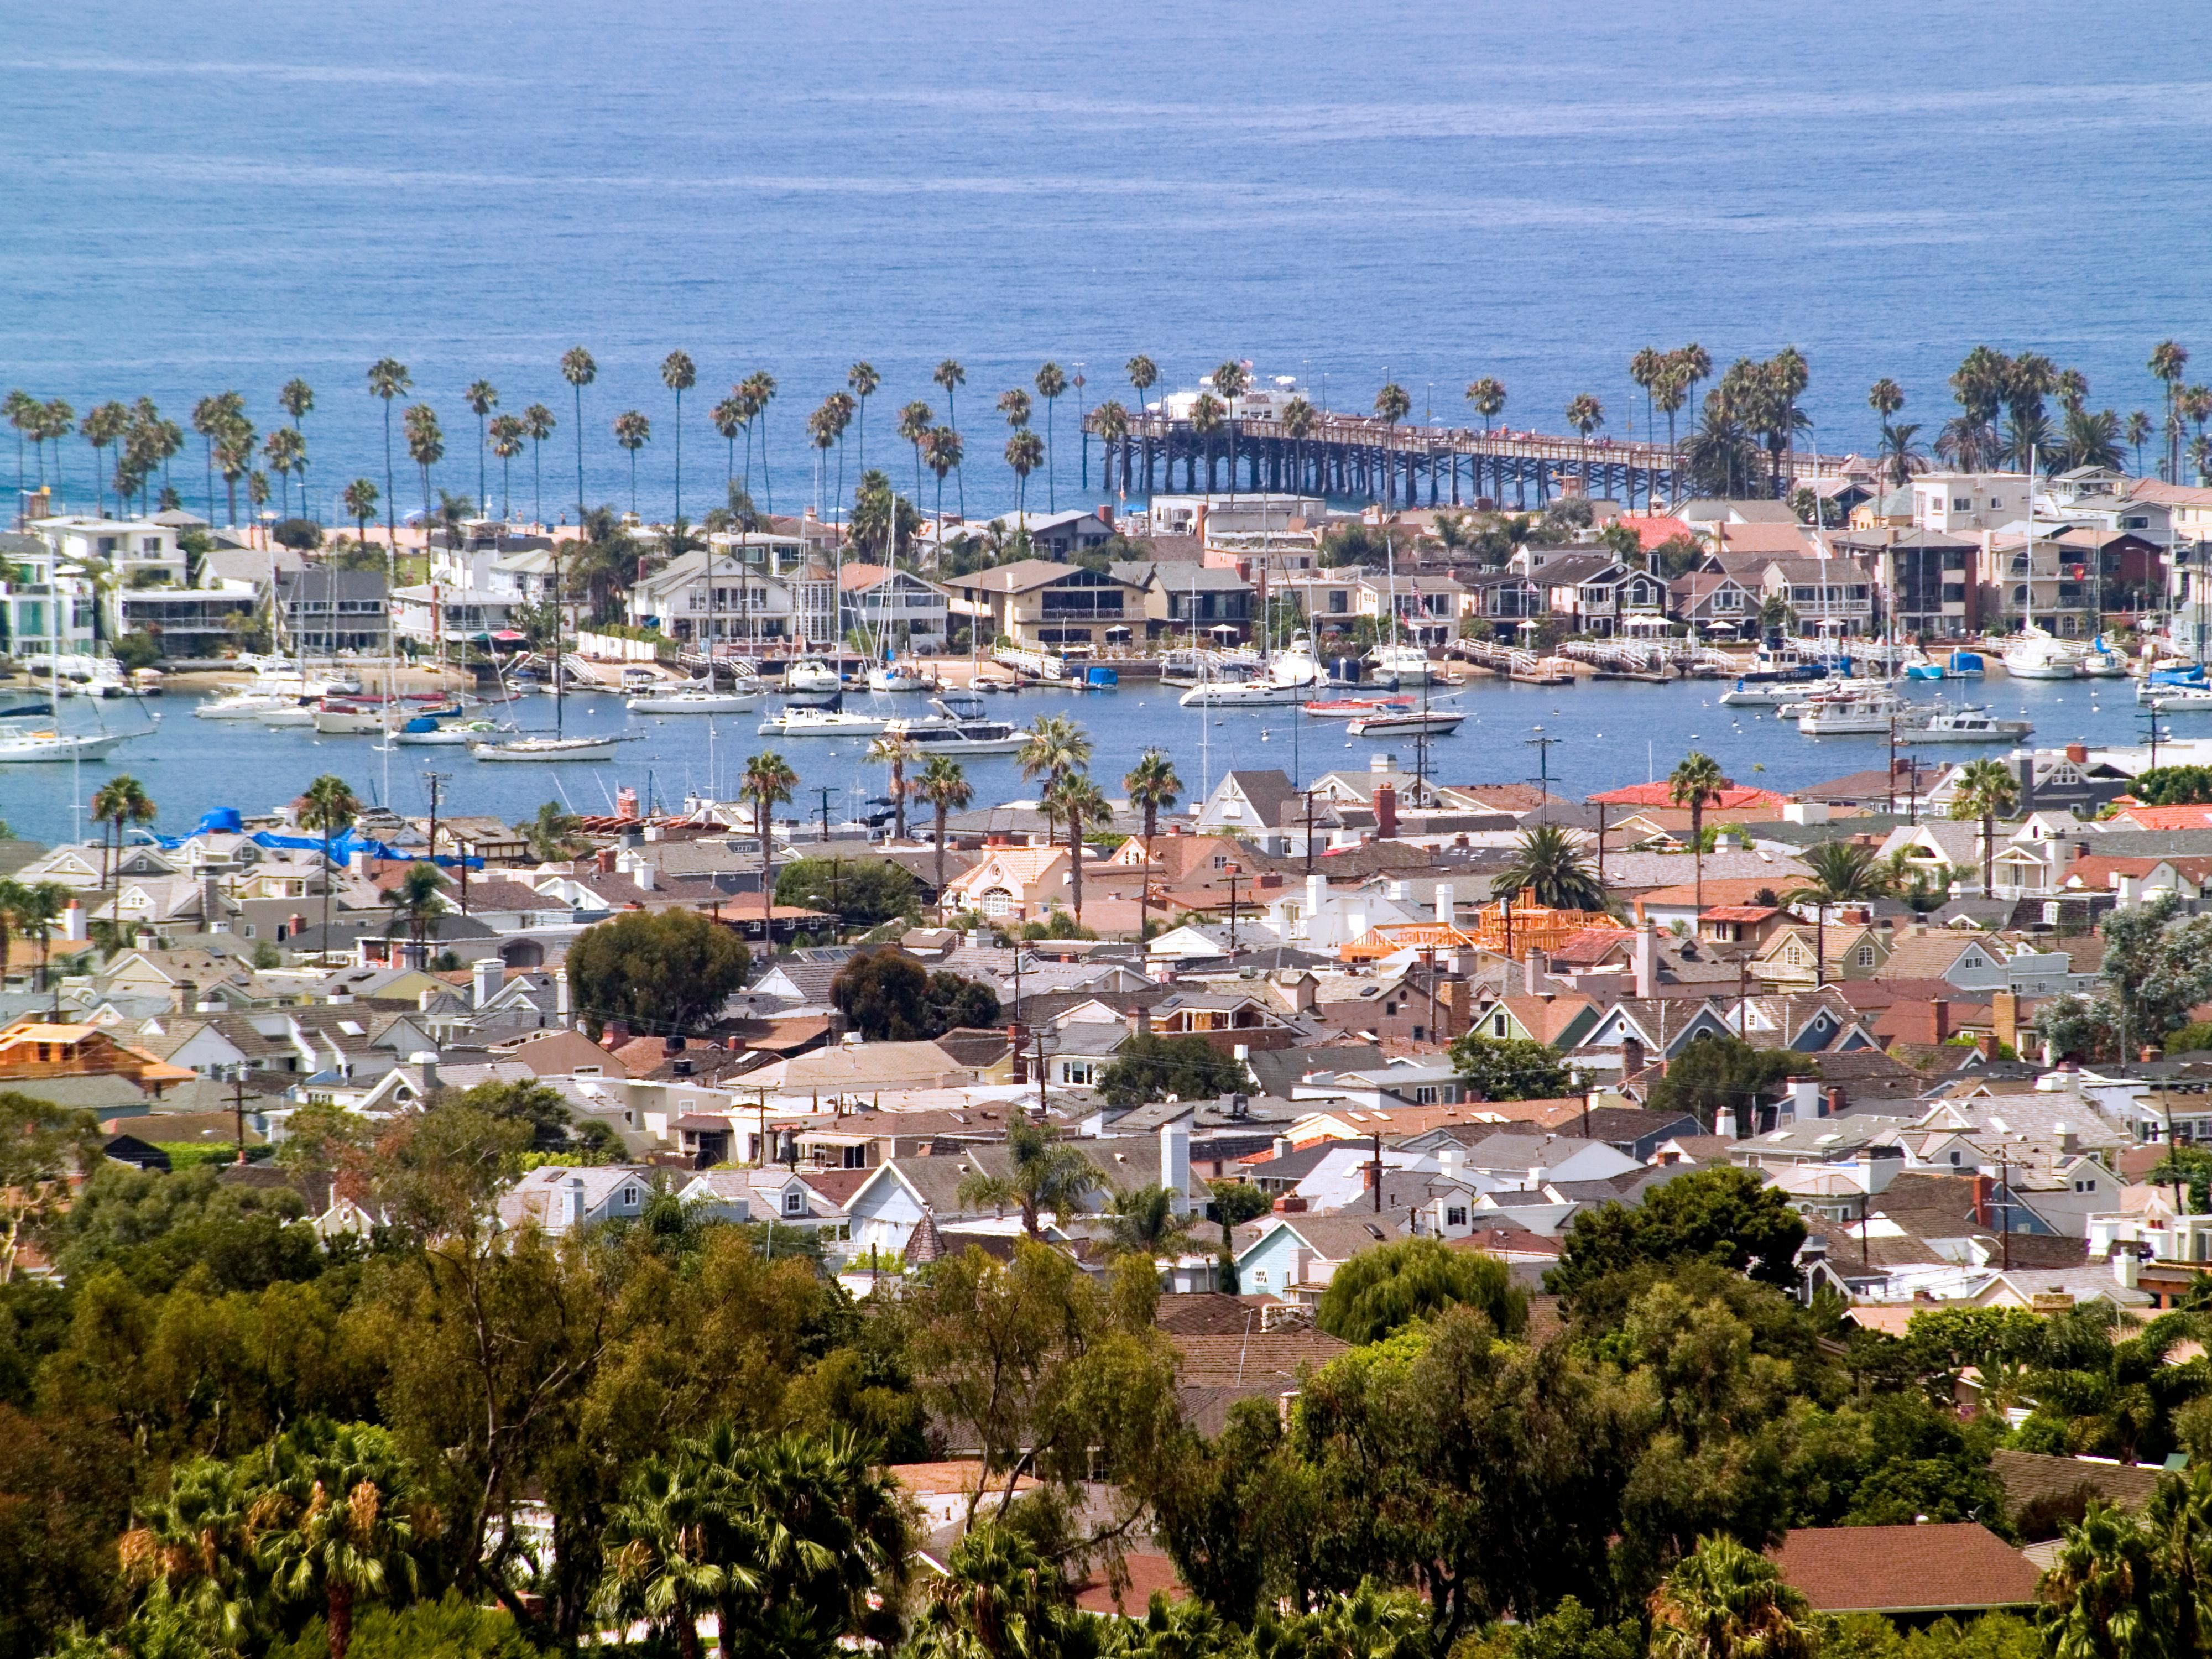 Aerial view of Newport Harbor